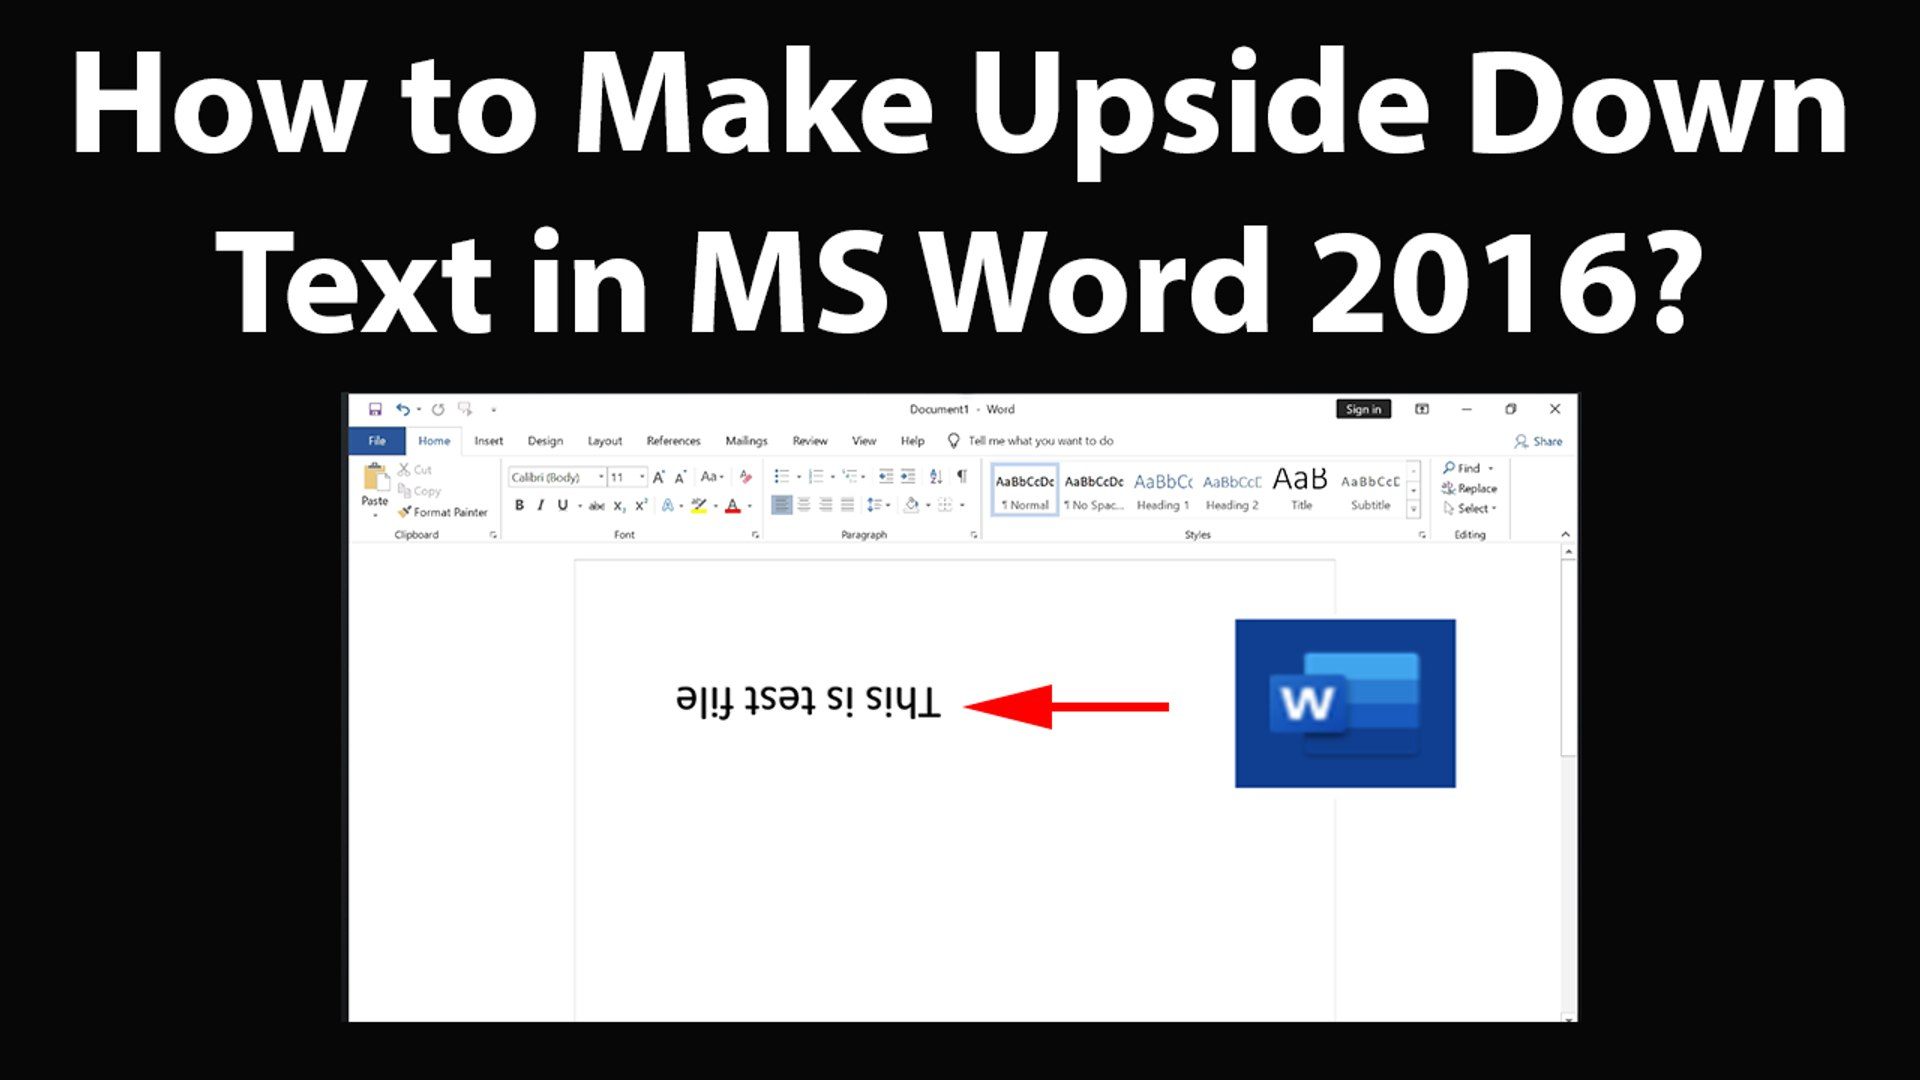 How to Make Upside Down Text in MS Word 10